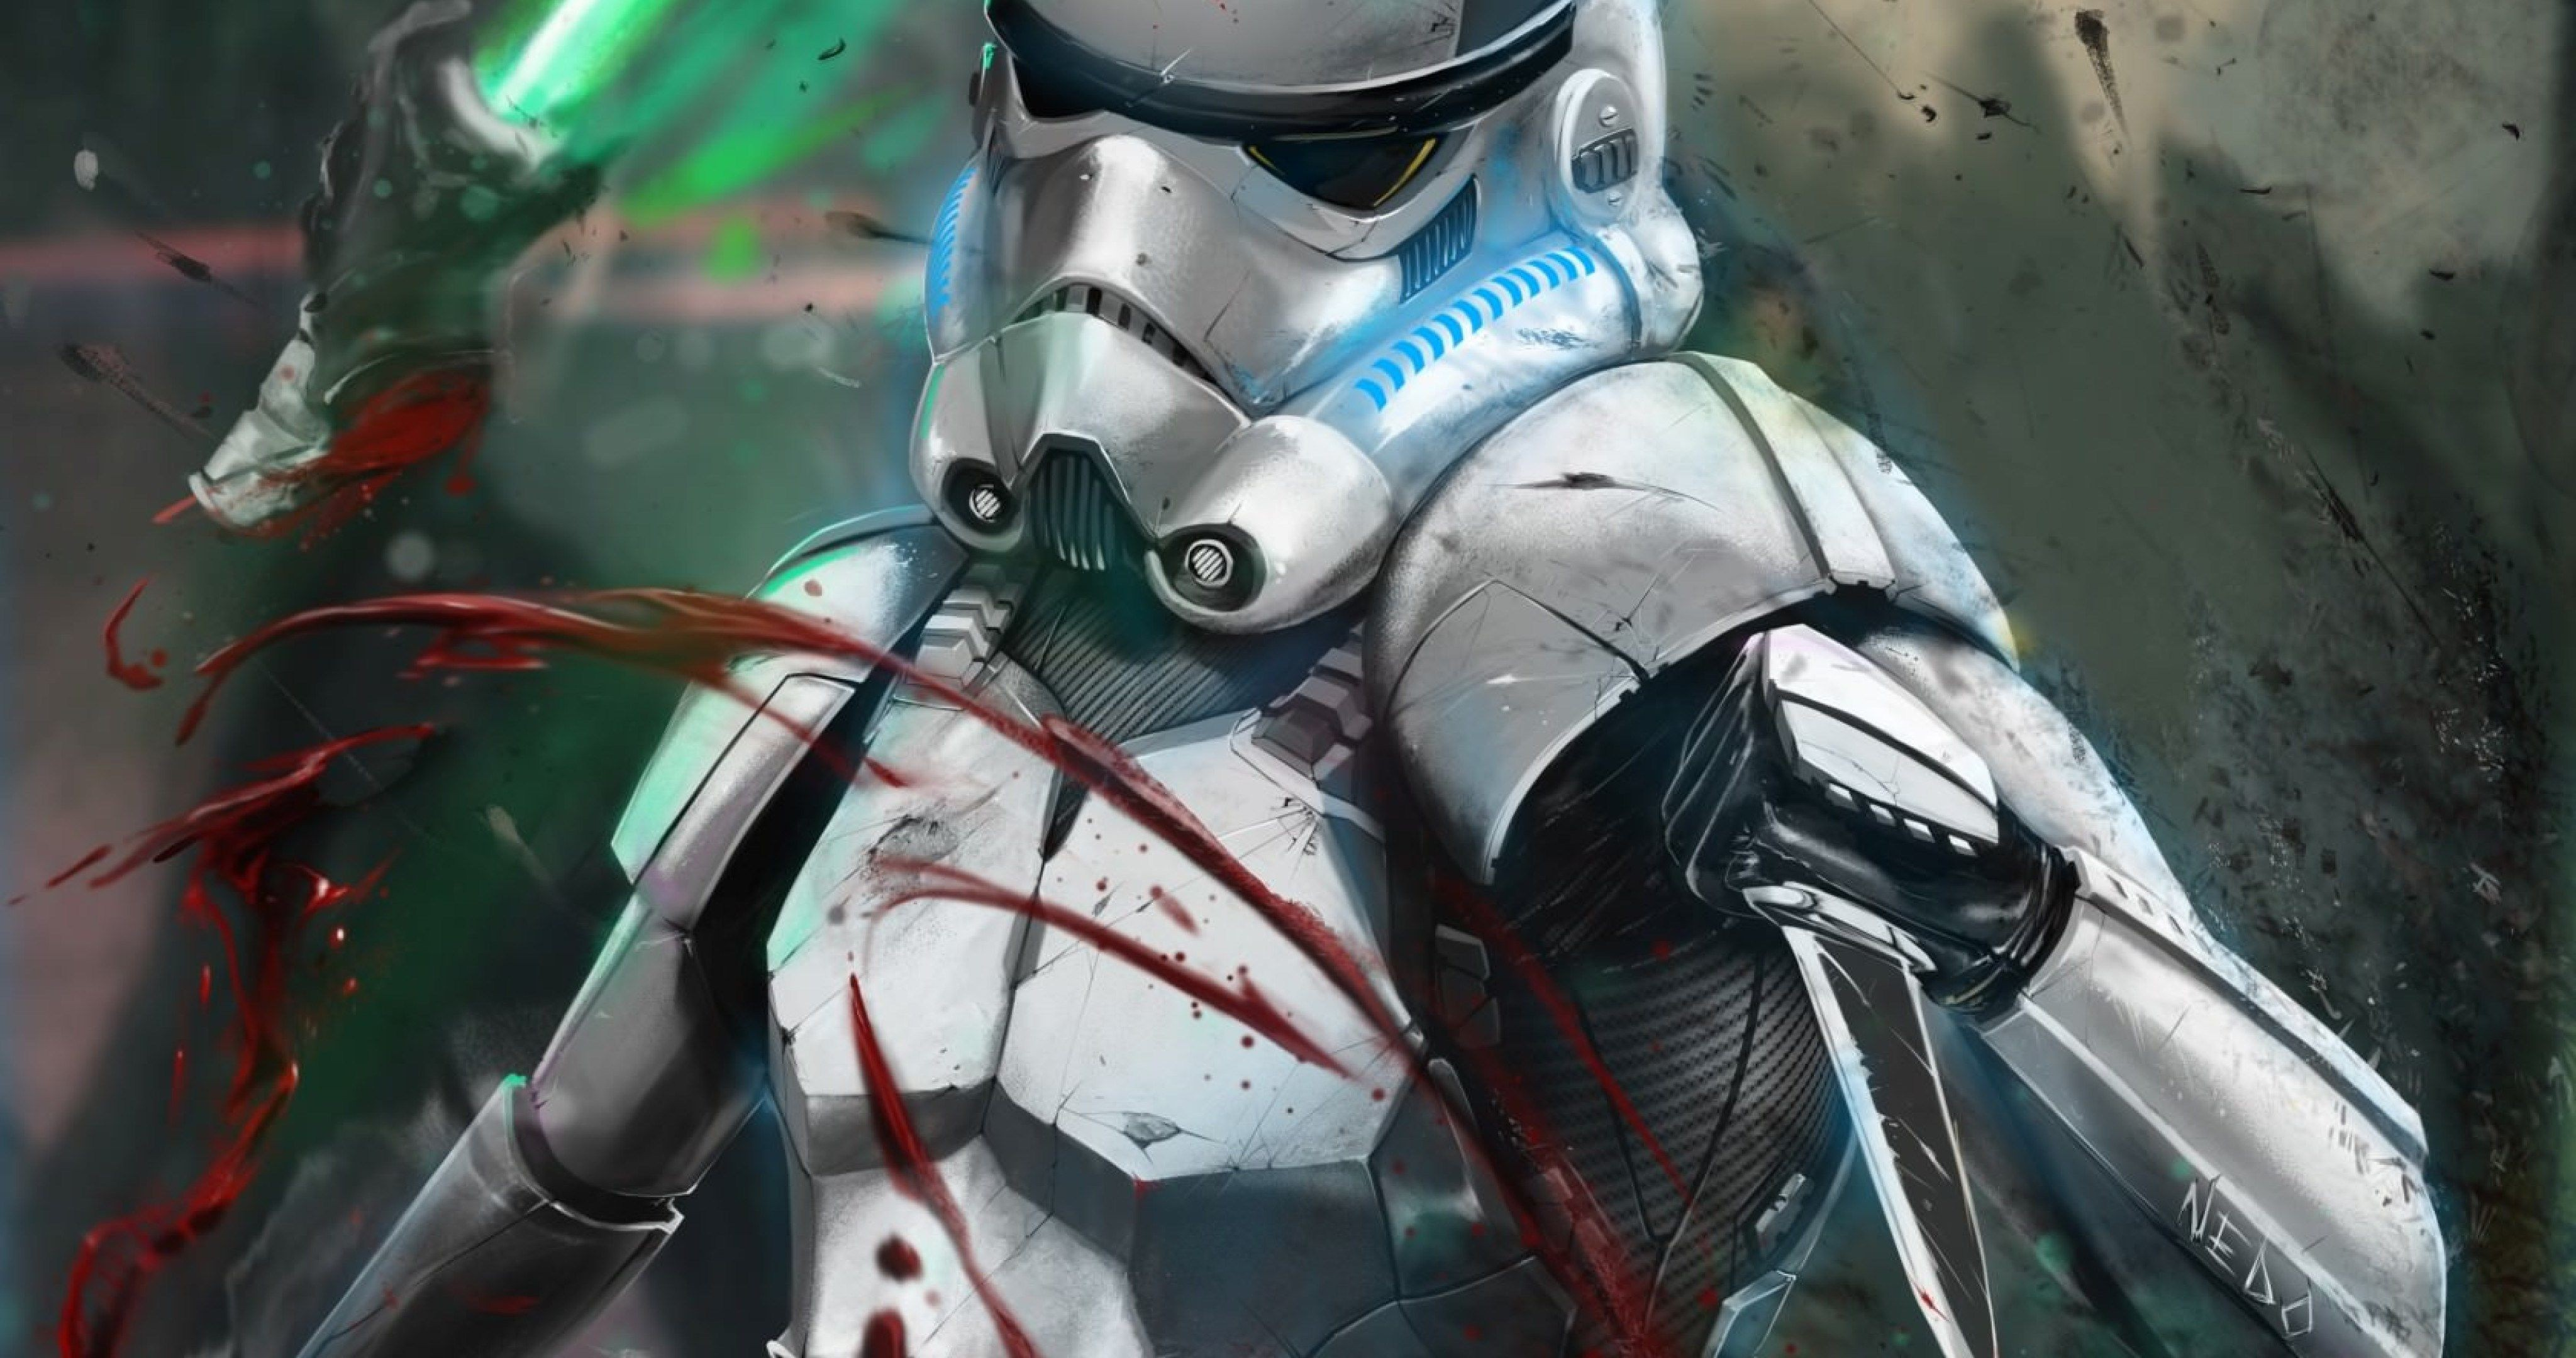 501st Wallpaper 100 images in Collection Page 3 4096x2160